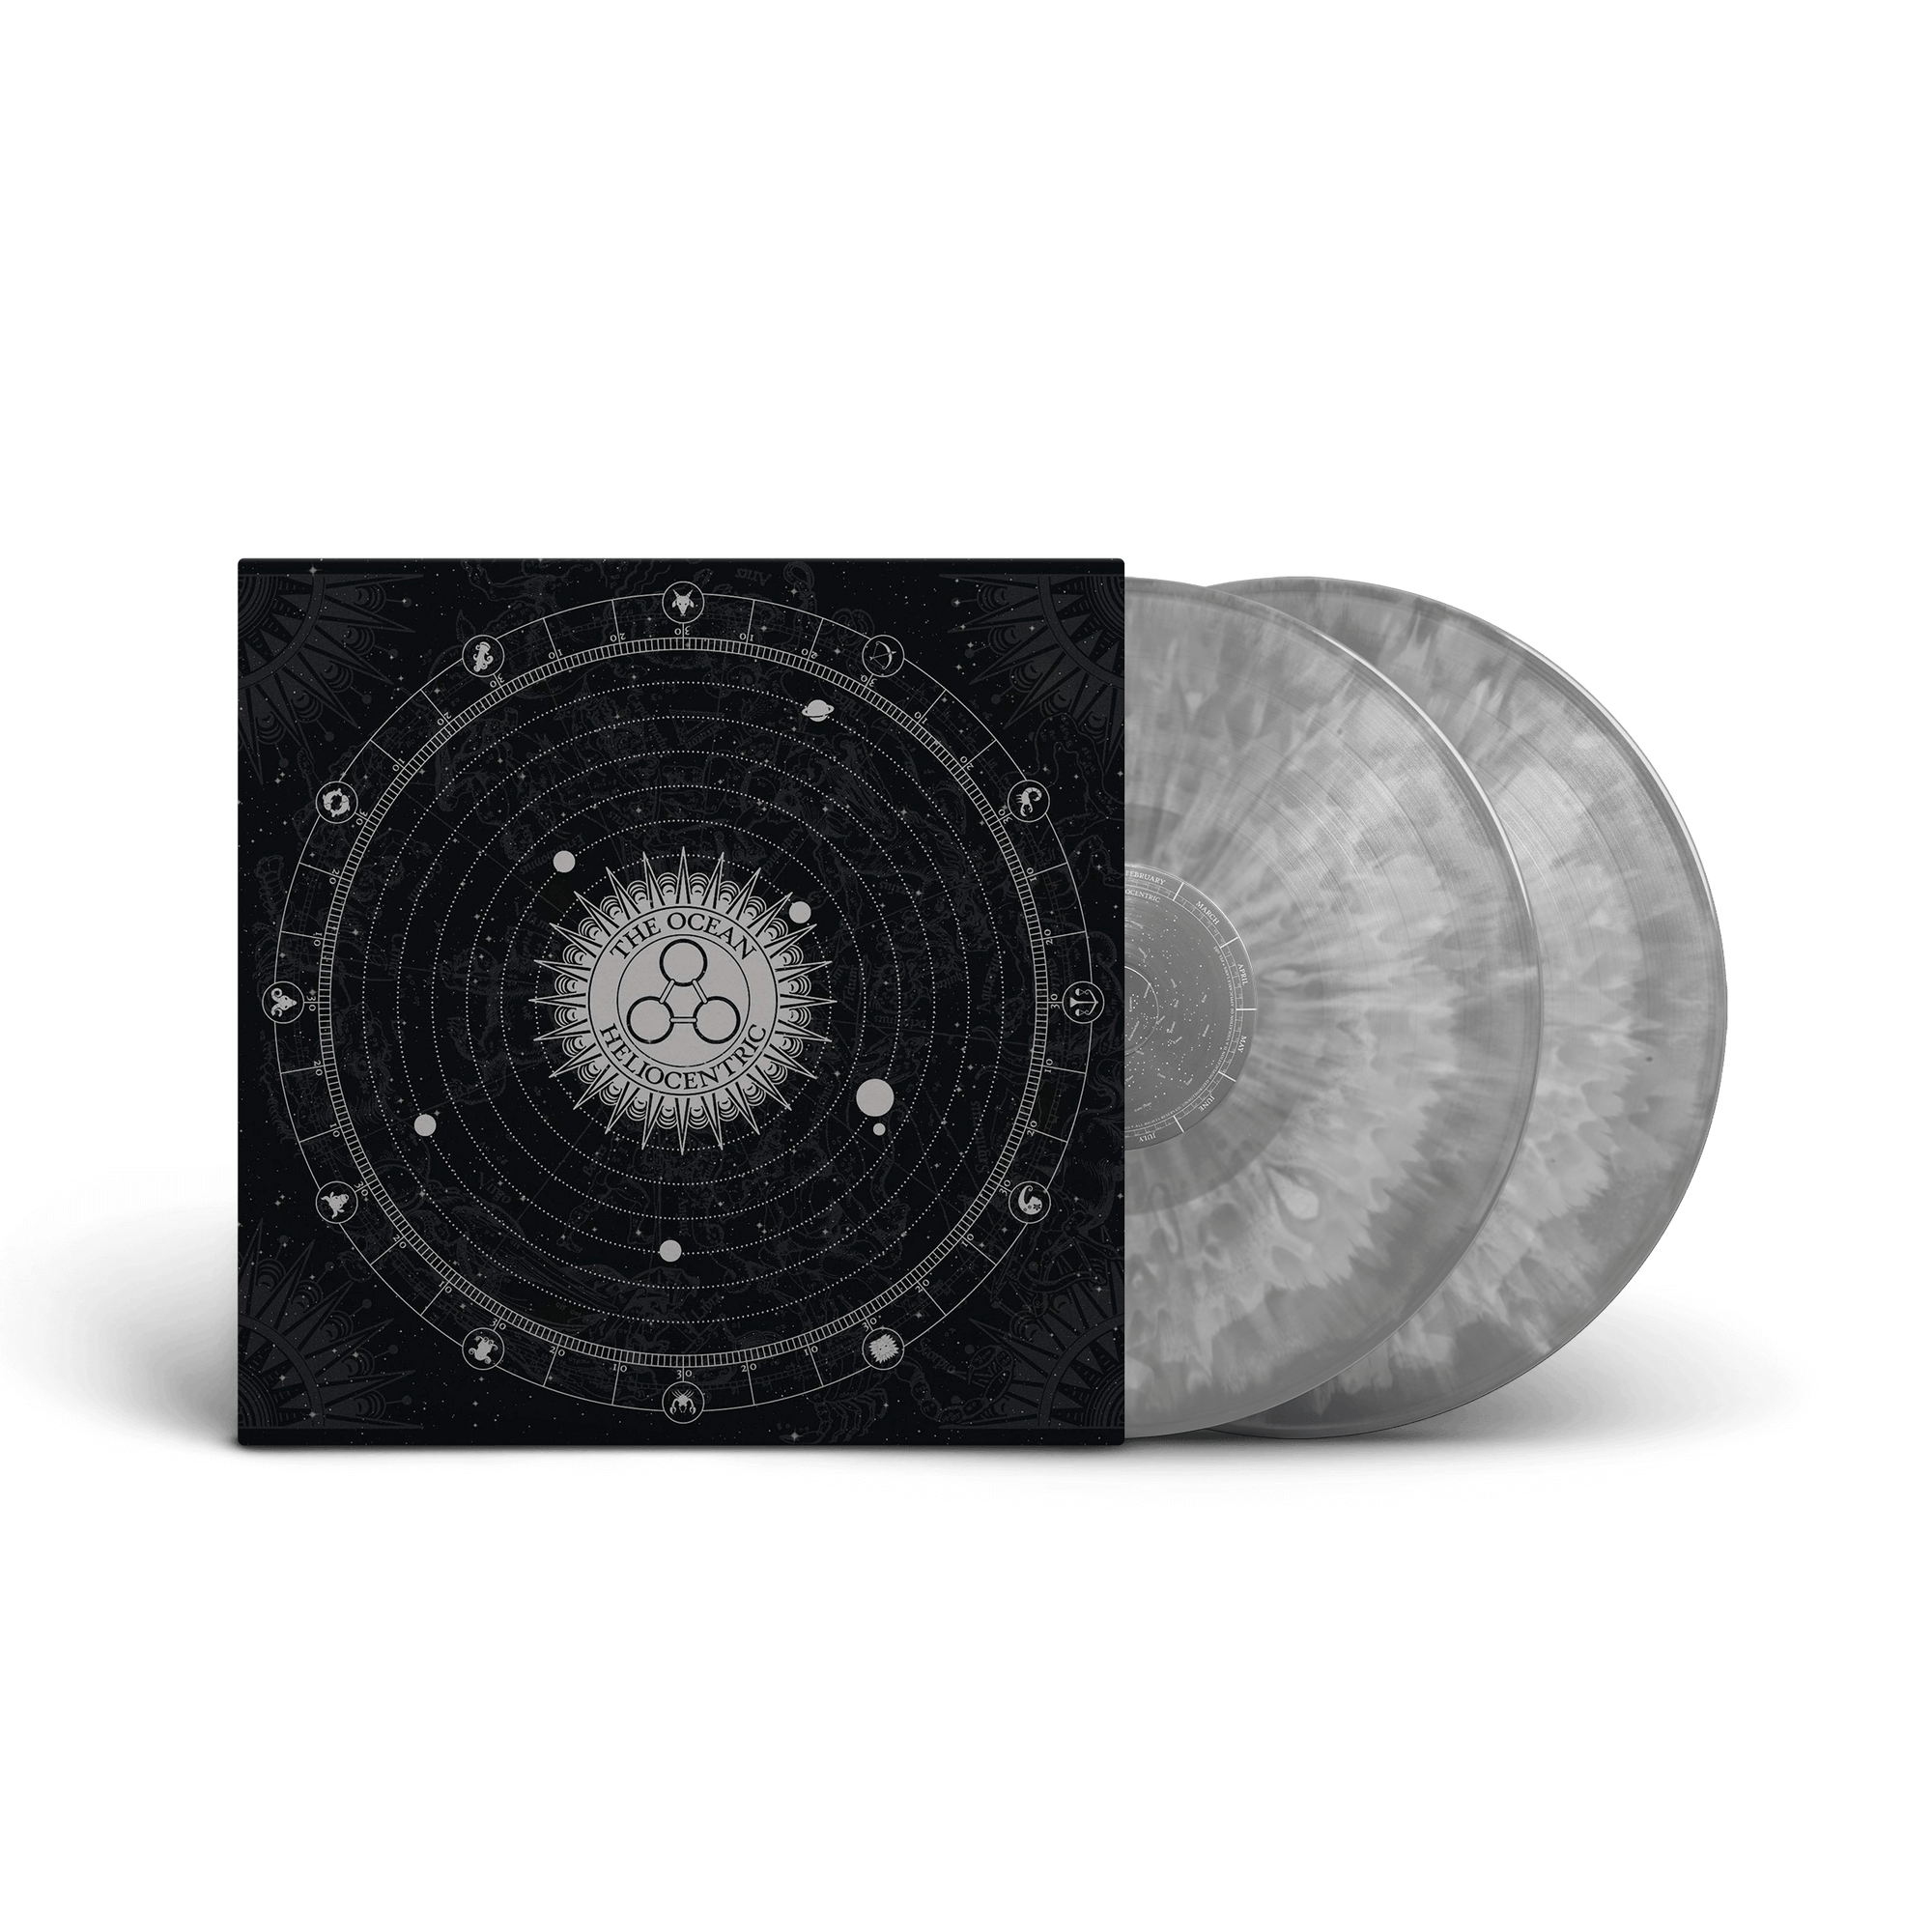 THE OCEAN // HELIOCENTRIC - LTD GALILEI EDITION VINYL (2LP) - Wild Thing Records